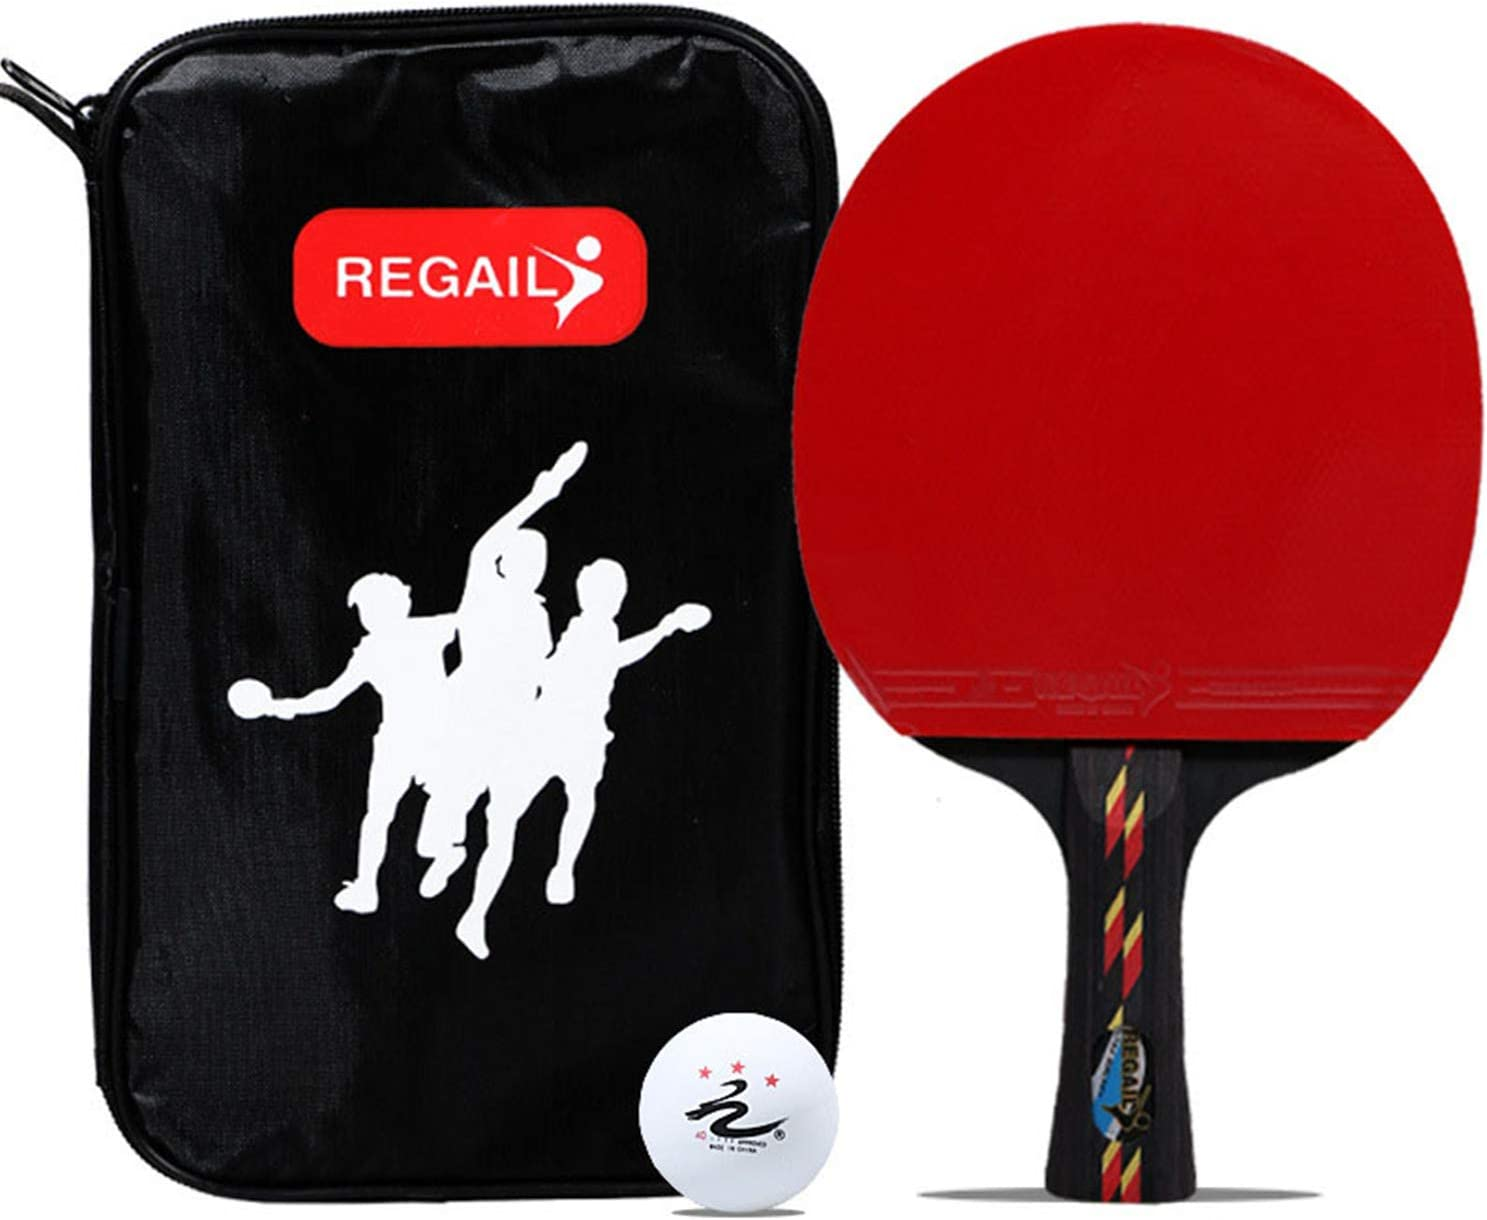 Jet Black Ping Pong Racket Combination - Intermediate Table Tennis Racket | 5-Layer Wood Blade, Rubber, Horn Handle | Match Table Tennis Racket | Protective Storage Box Cover